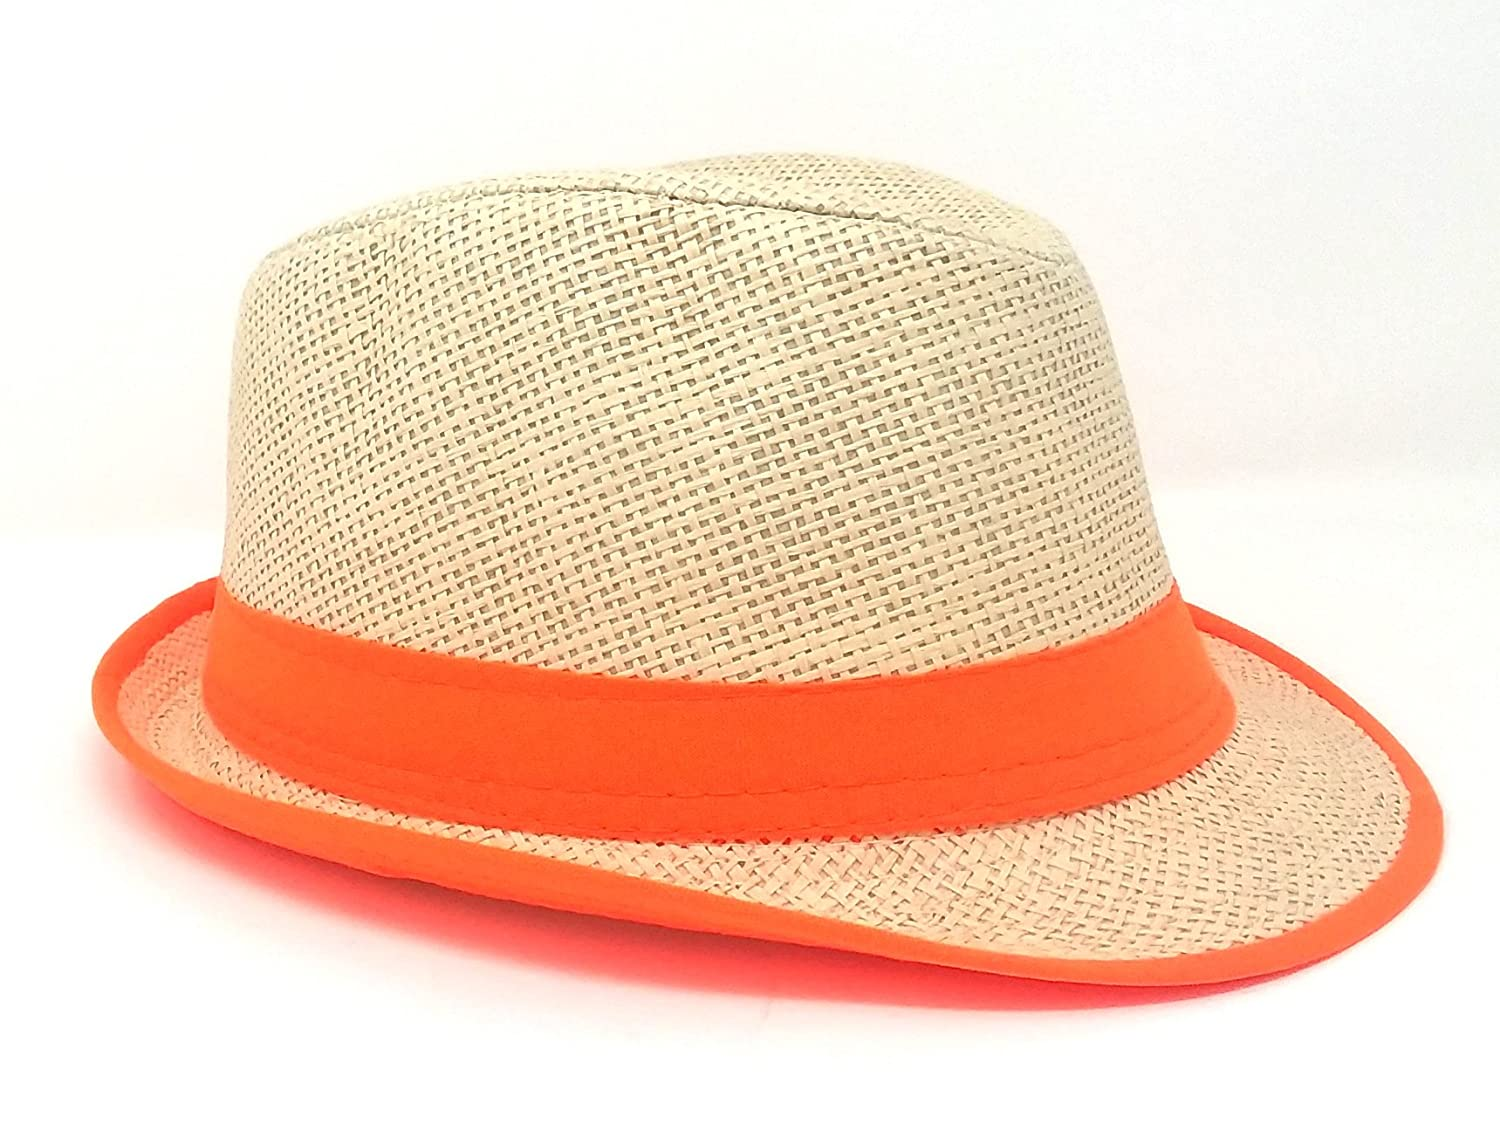 fce88ddf2 Chachlili Fedoras Lightweight Classic Hat Assorted Colors and Styles  Wholesale Bulk LOT